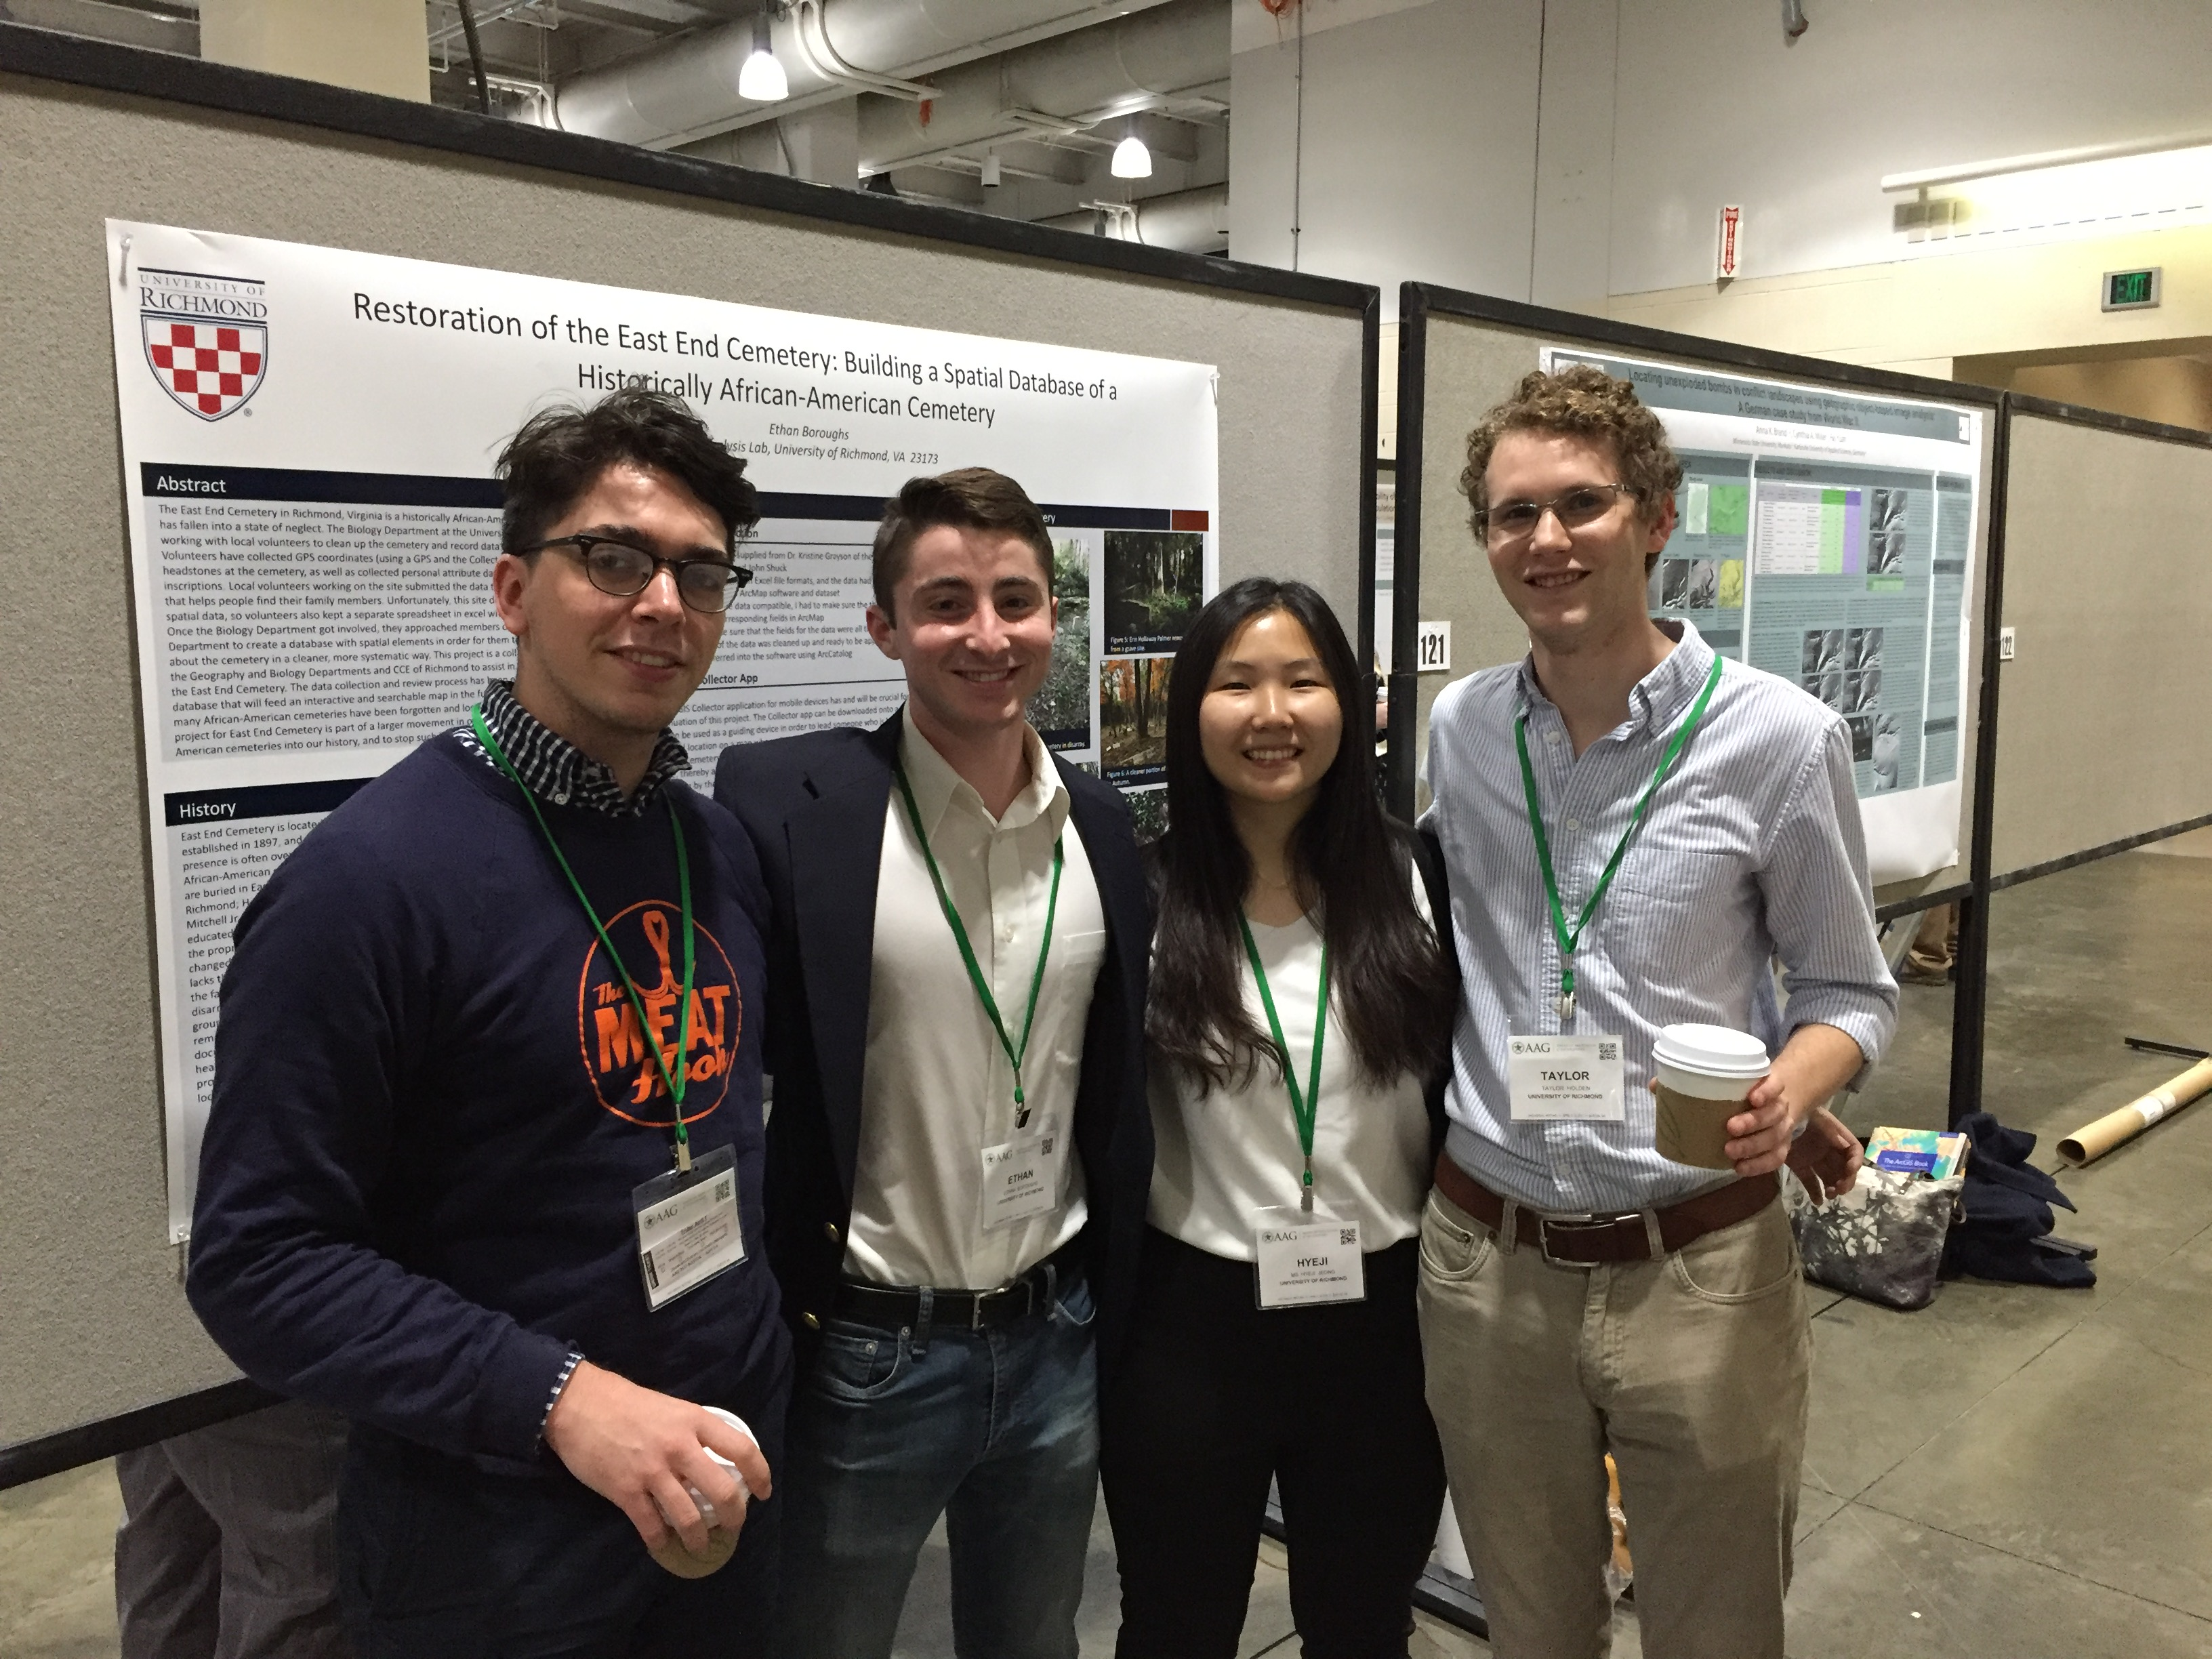 Left to Right: Jacob Salamy, Ethan Boroughs, Evelyn Jeong, and Taylor Holden